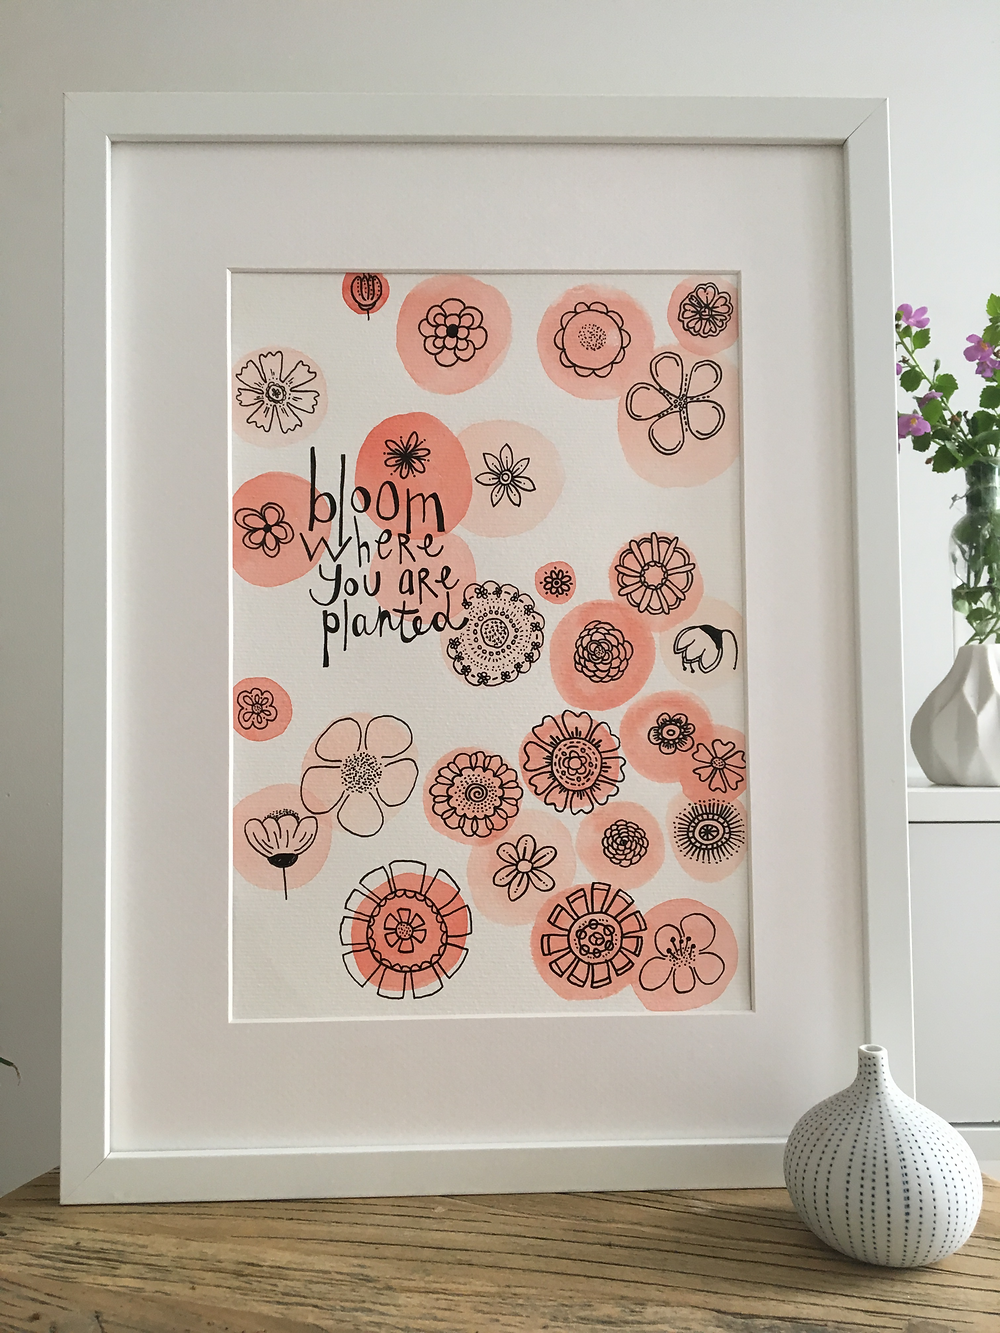 bloom where you are planted. Peach, Pink, Black, White, watercolour, ink, text.